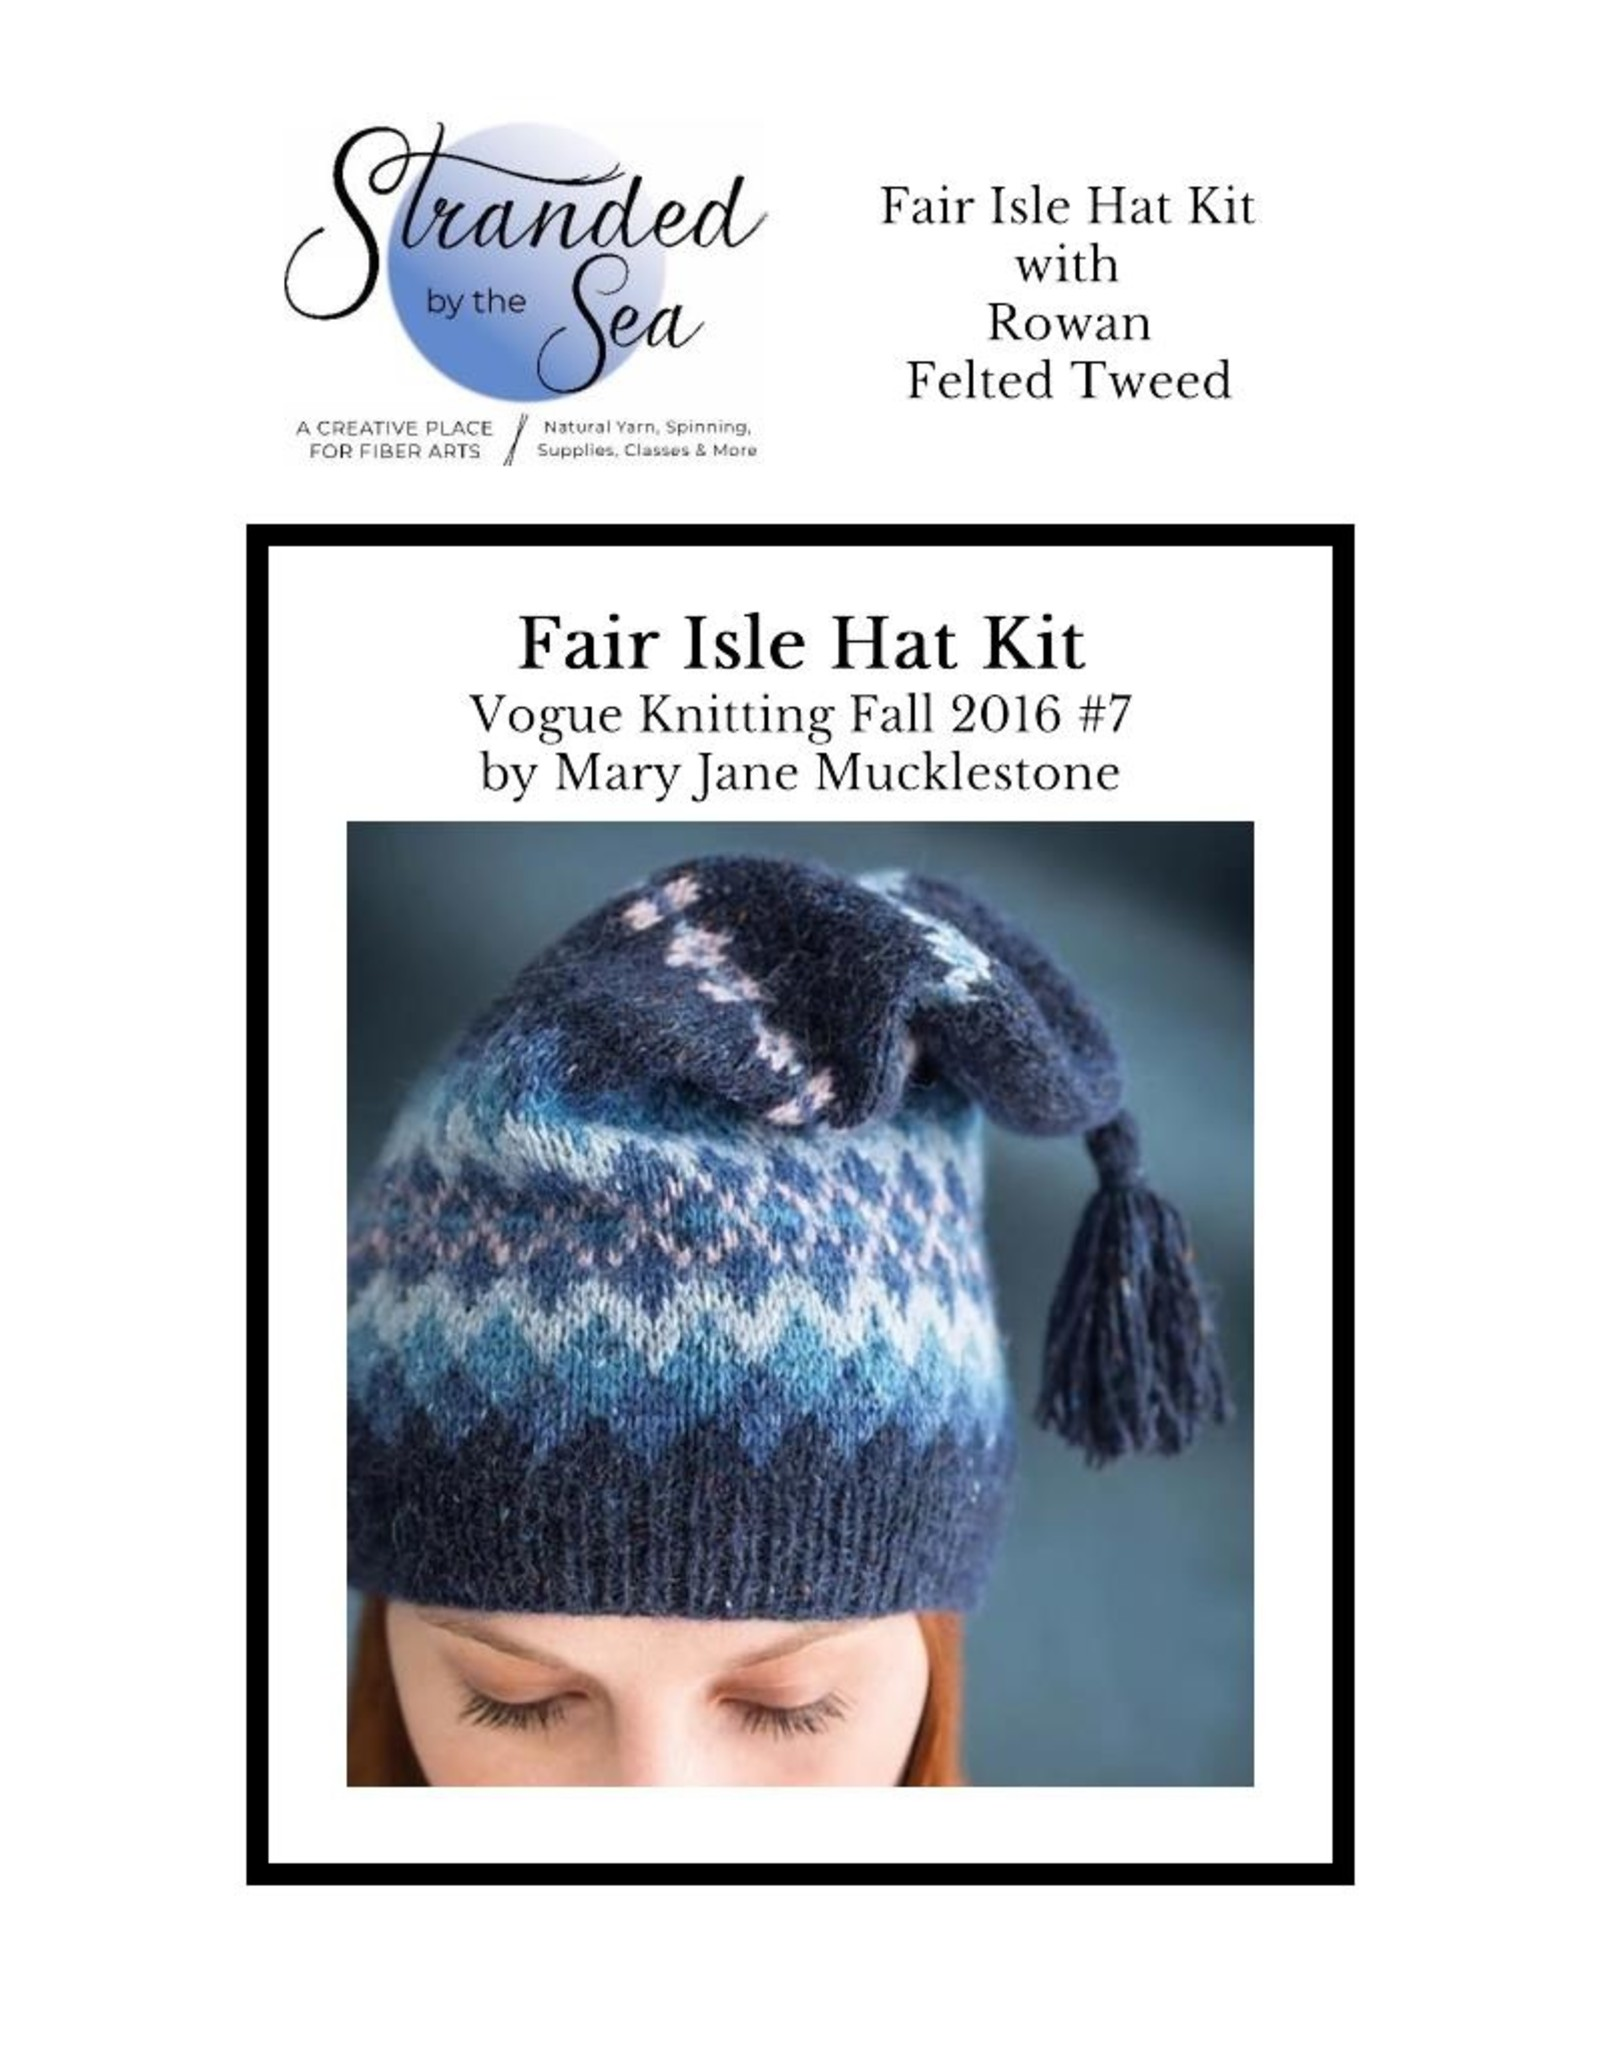 Stranded by the Sea Fair Isle Hat Kit by Mucklestone